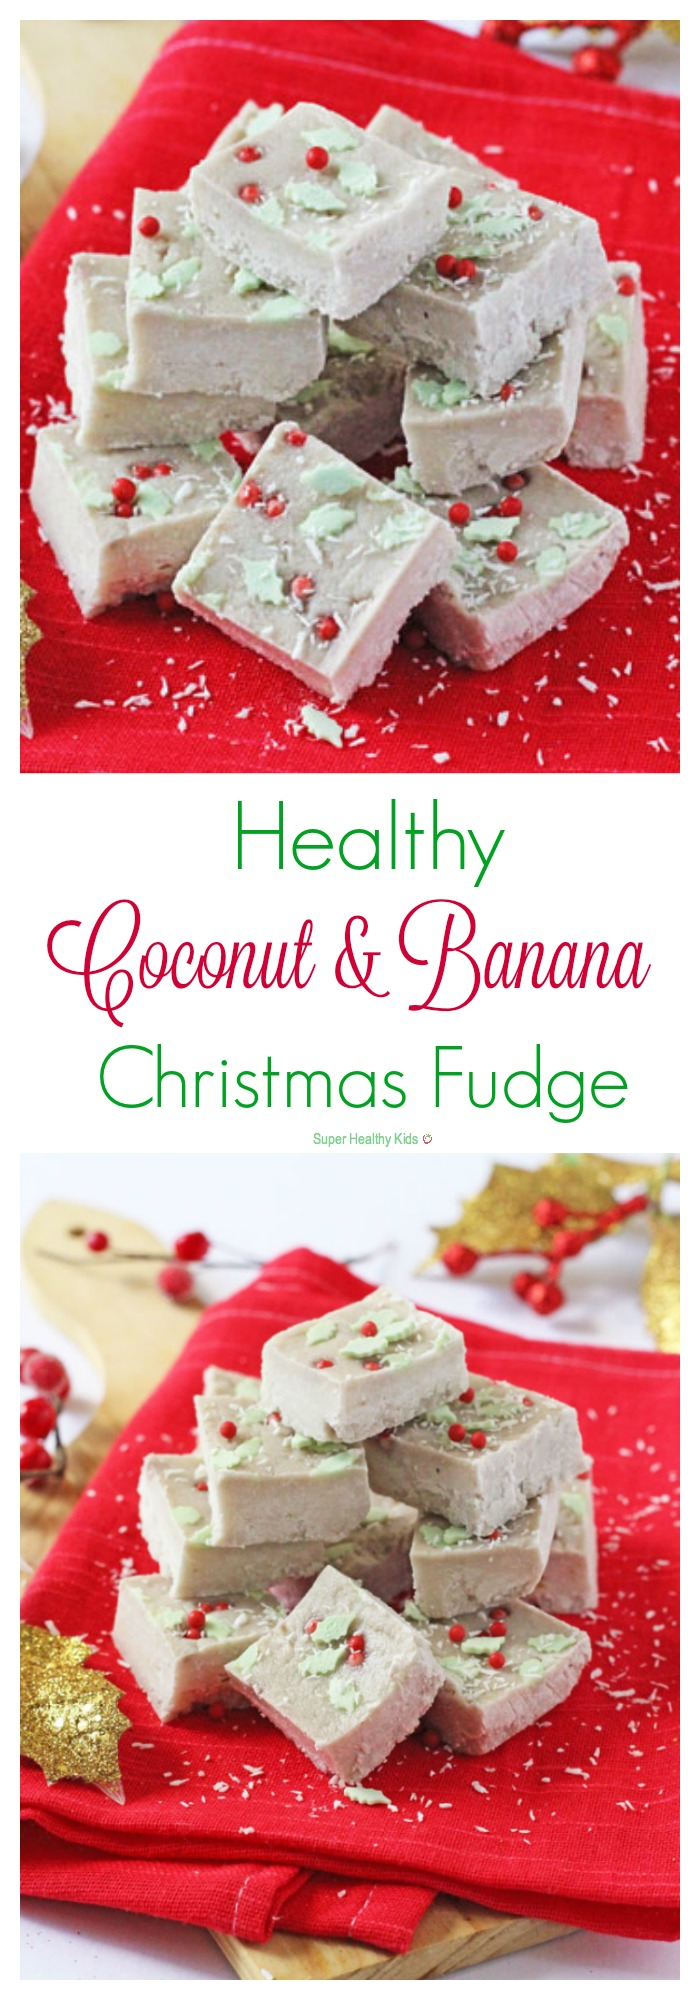 Healthy coconut and banana christmas fudge healthy ideas for kids healthy coconut and banana christmas fudge a super healthy christmas fudge made with just two forumfinder Gallery